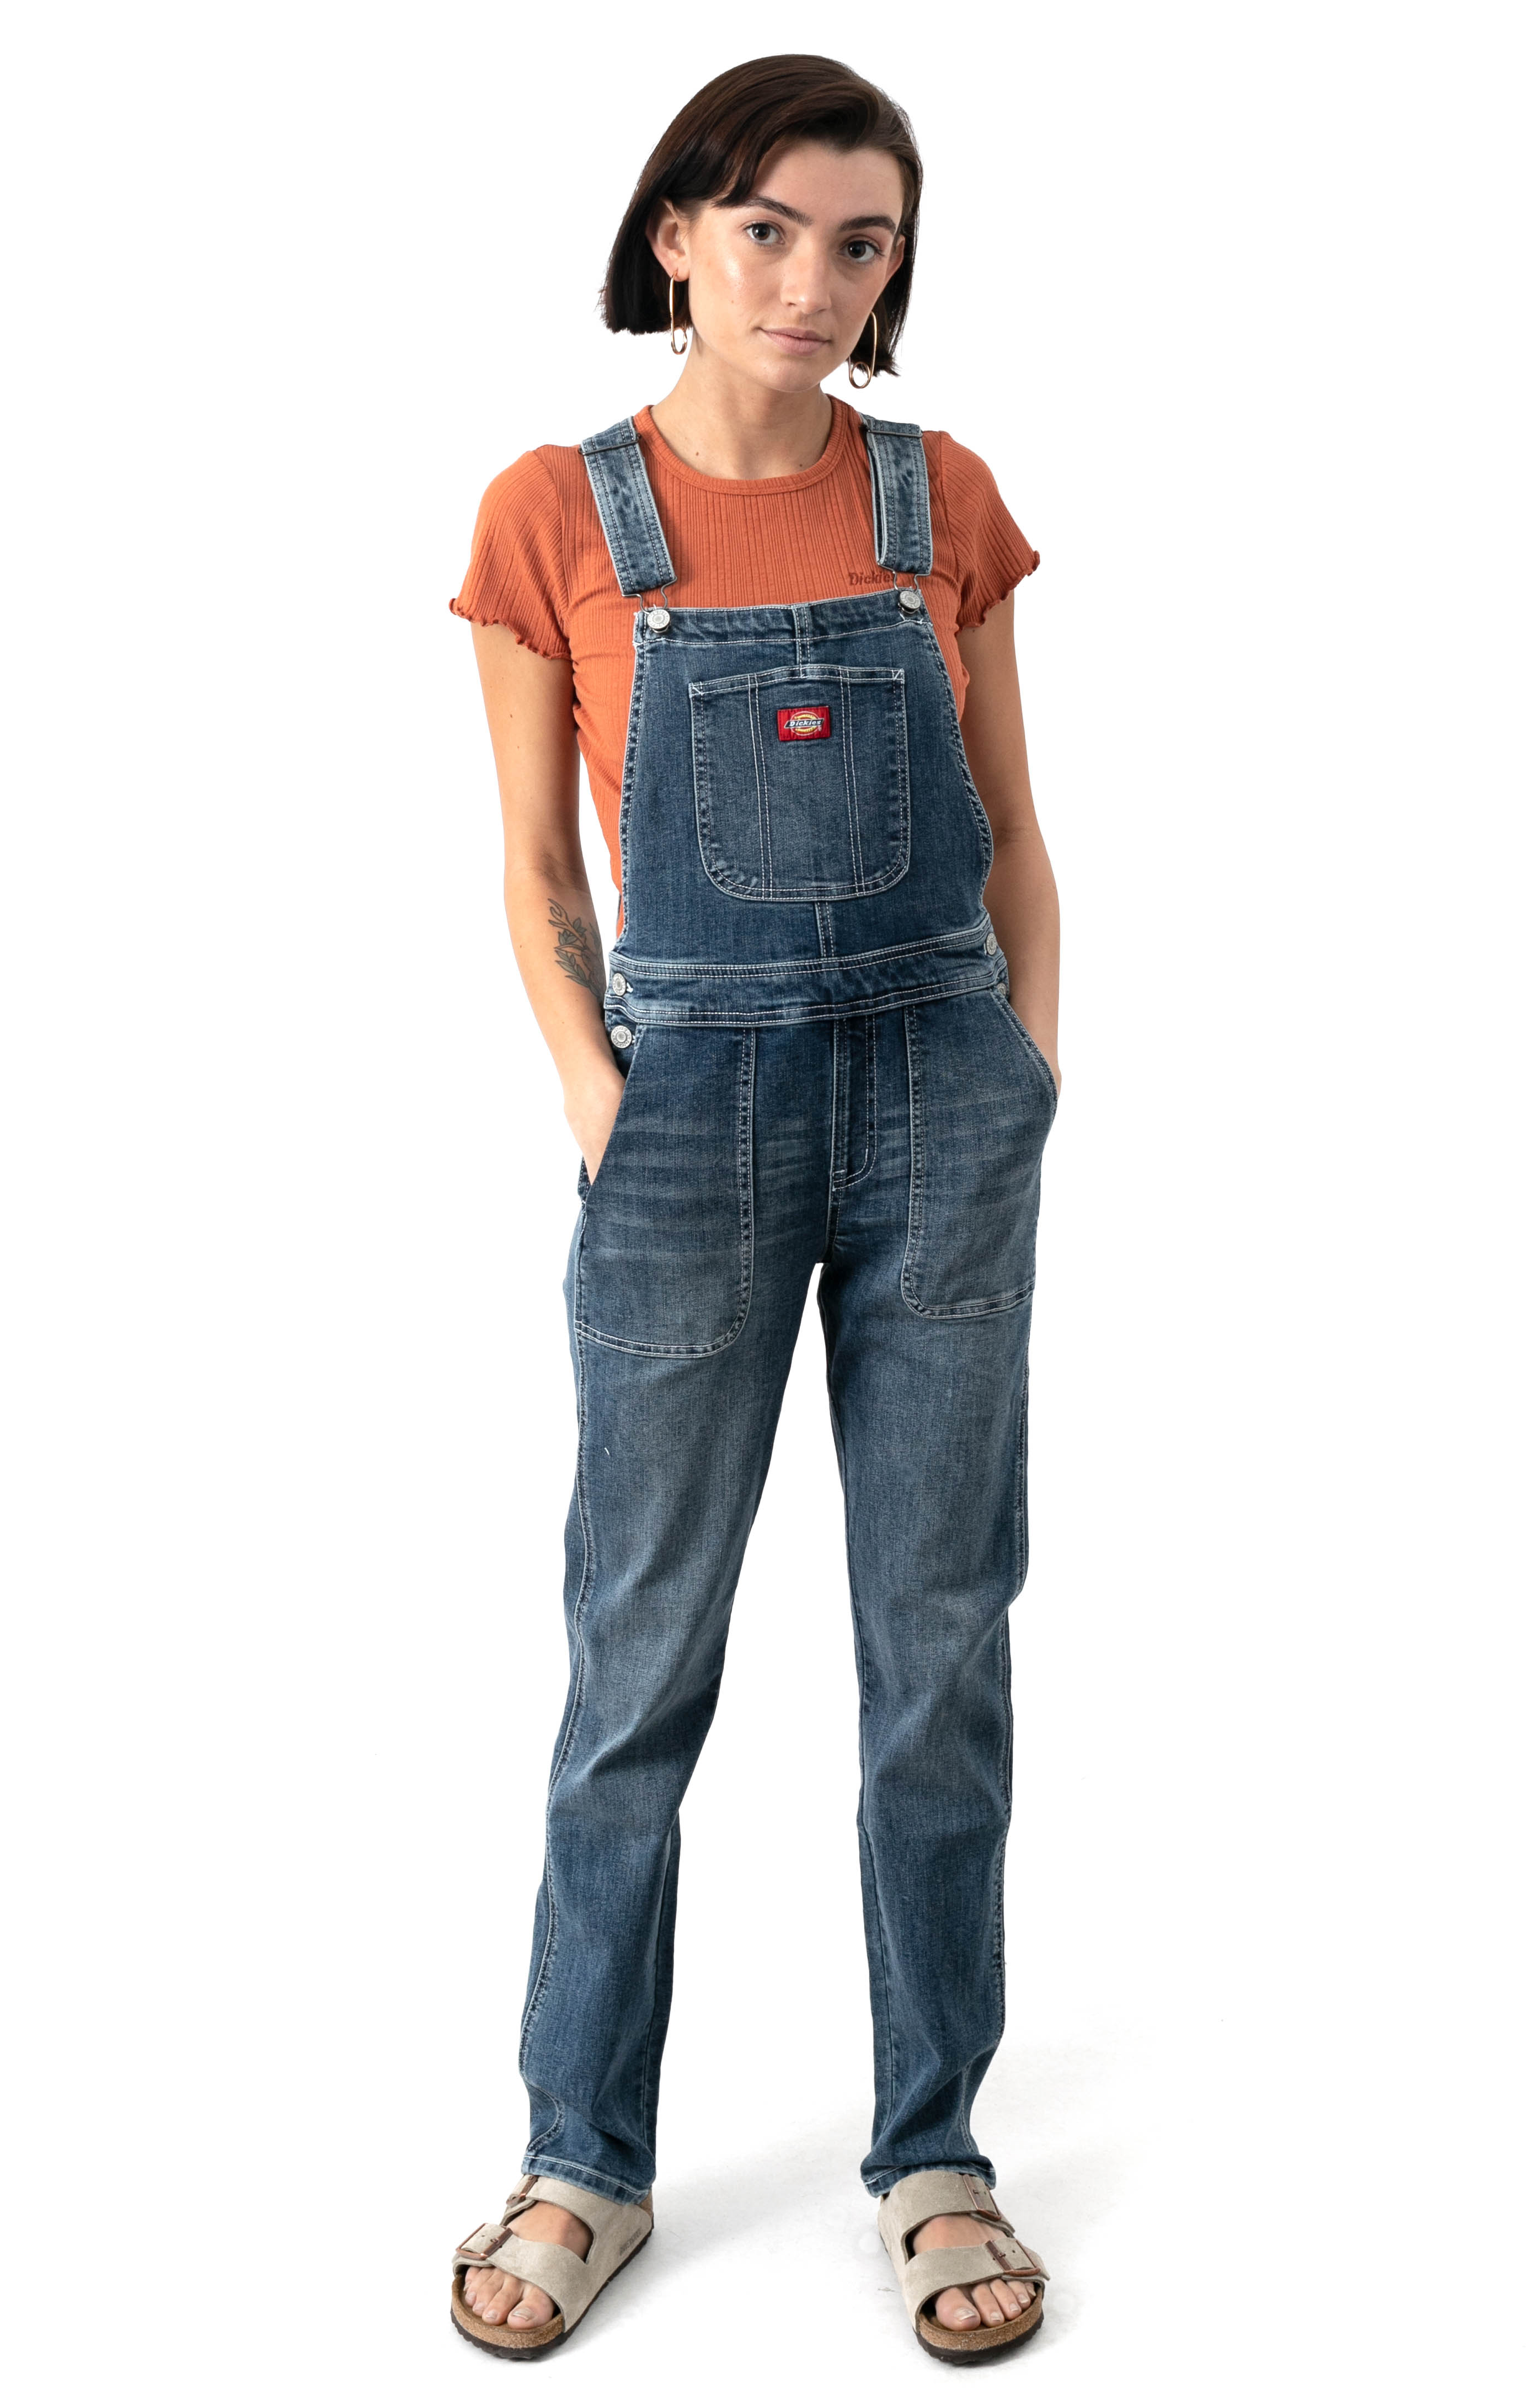 Lambchop Pocket Overalls - Medium Vintage Wash /White